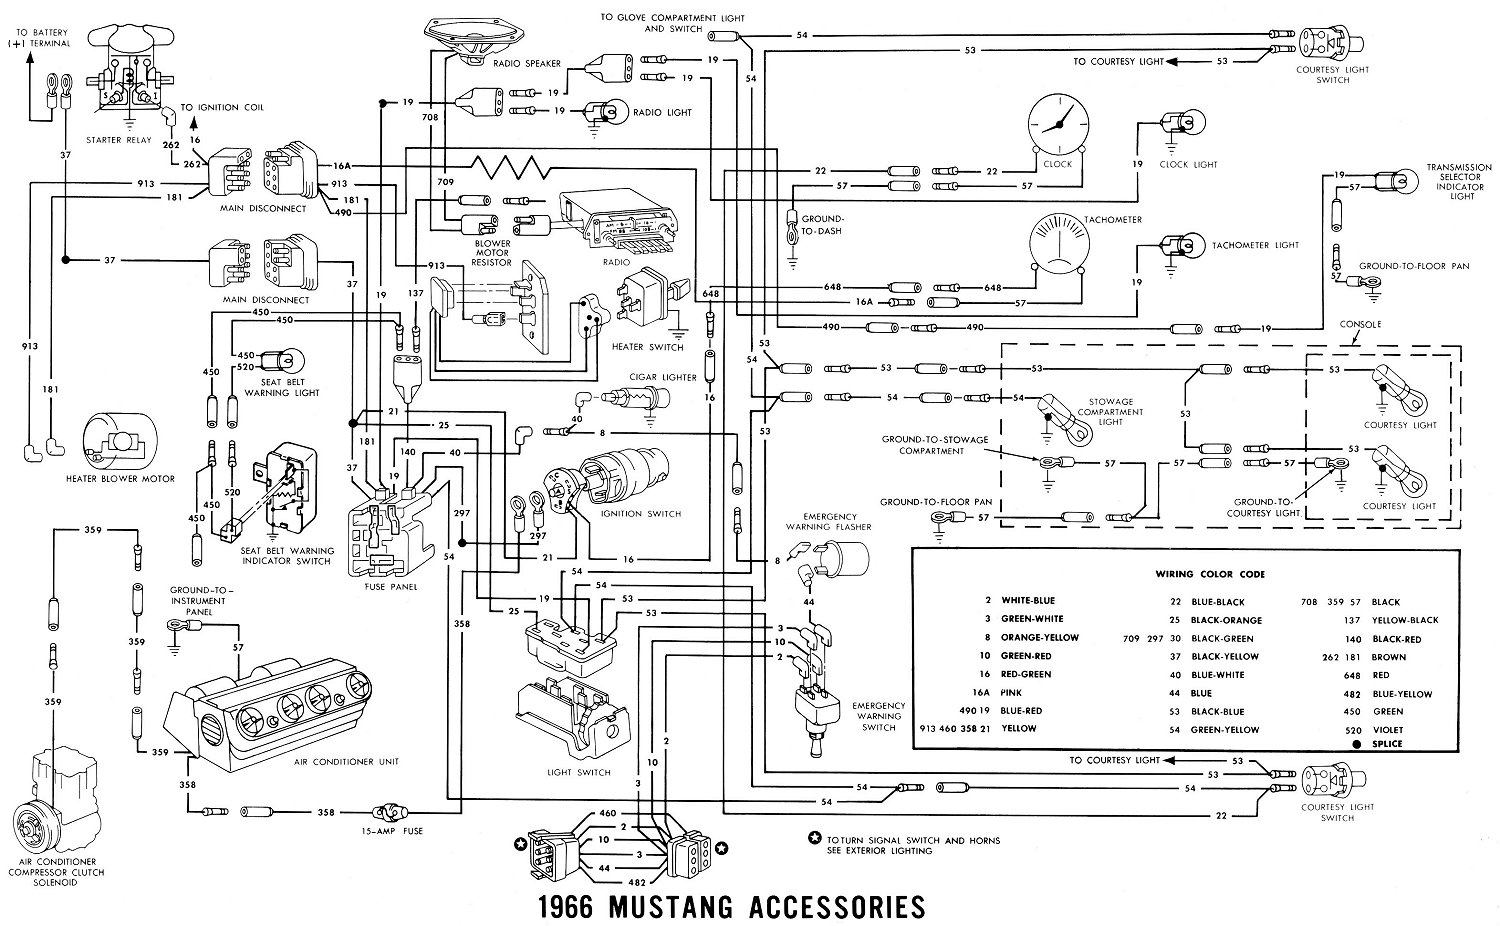 1966 Mustang Wiring Diagrams Average Joe Restoration Ford Color Guide Schematic